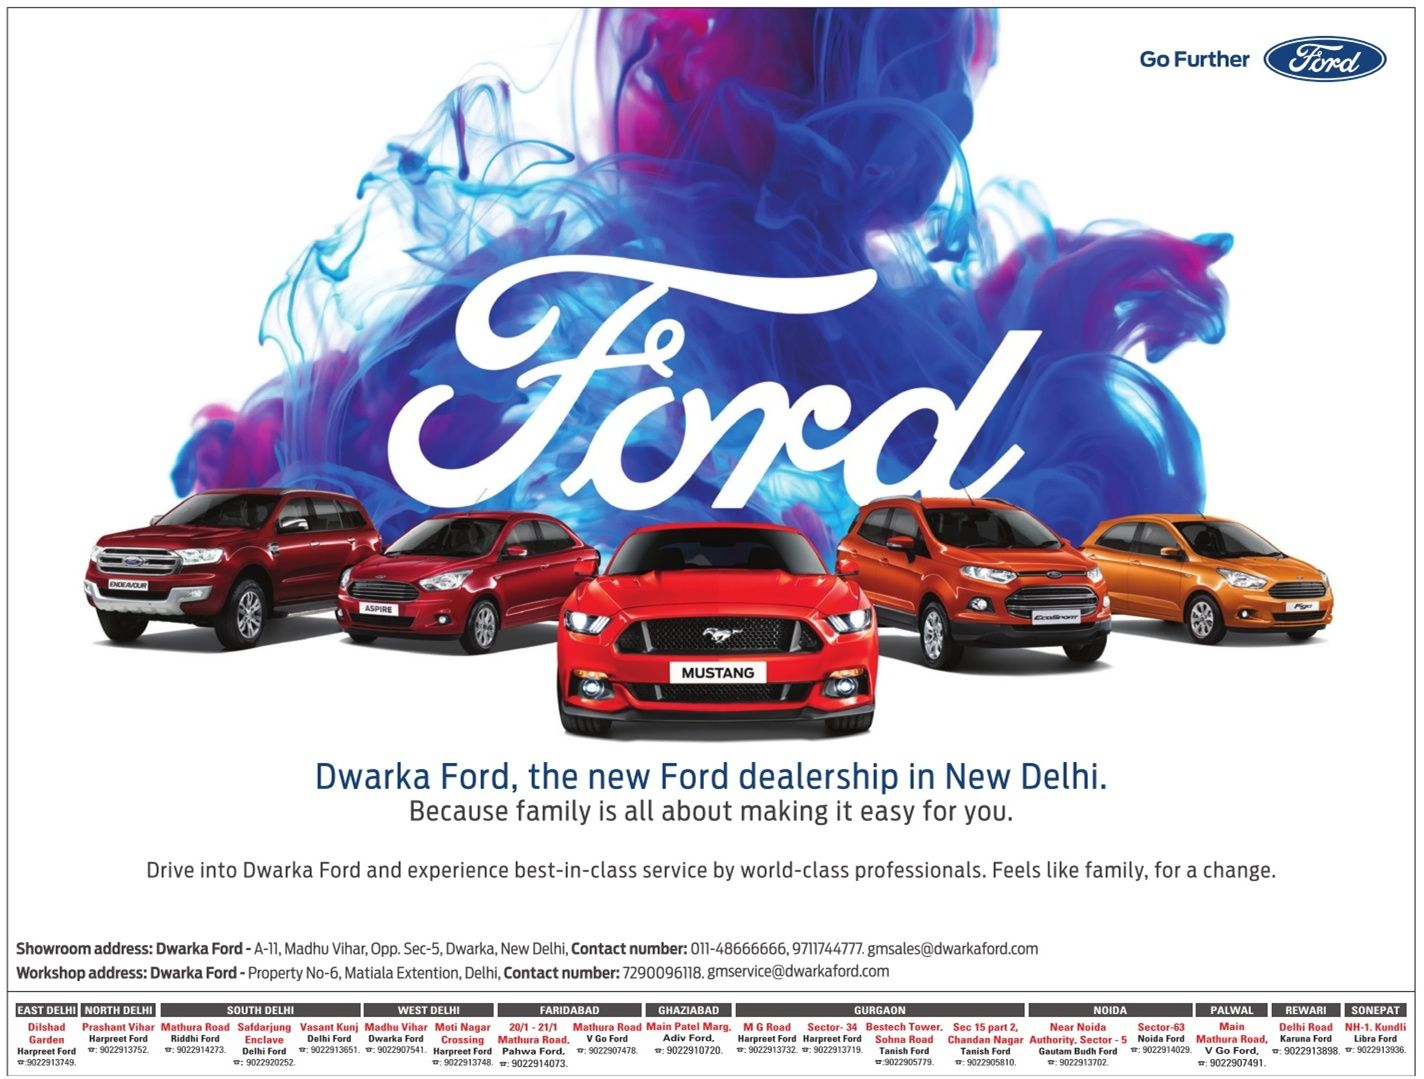 Ford Dwarka Ford The New Ford Dealership In New Delhi Ad Times Of